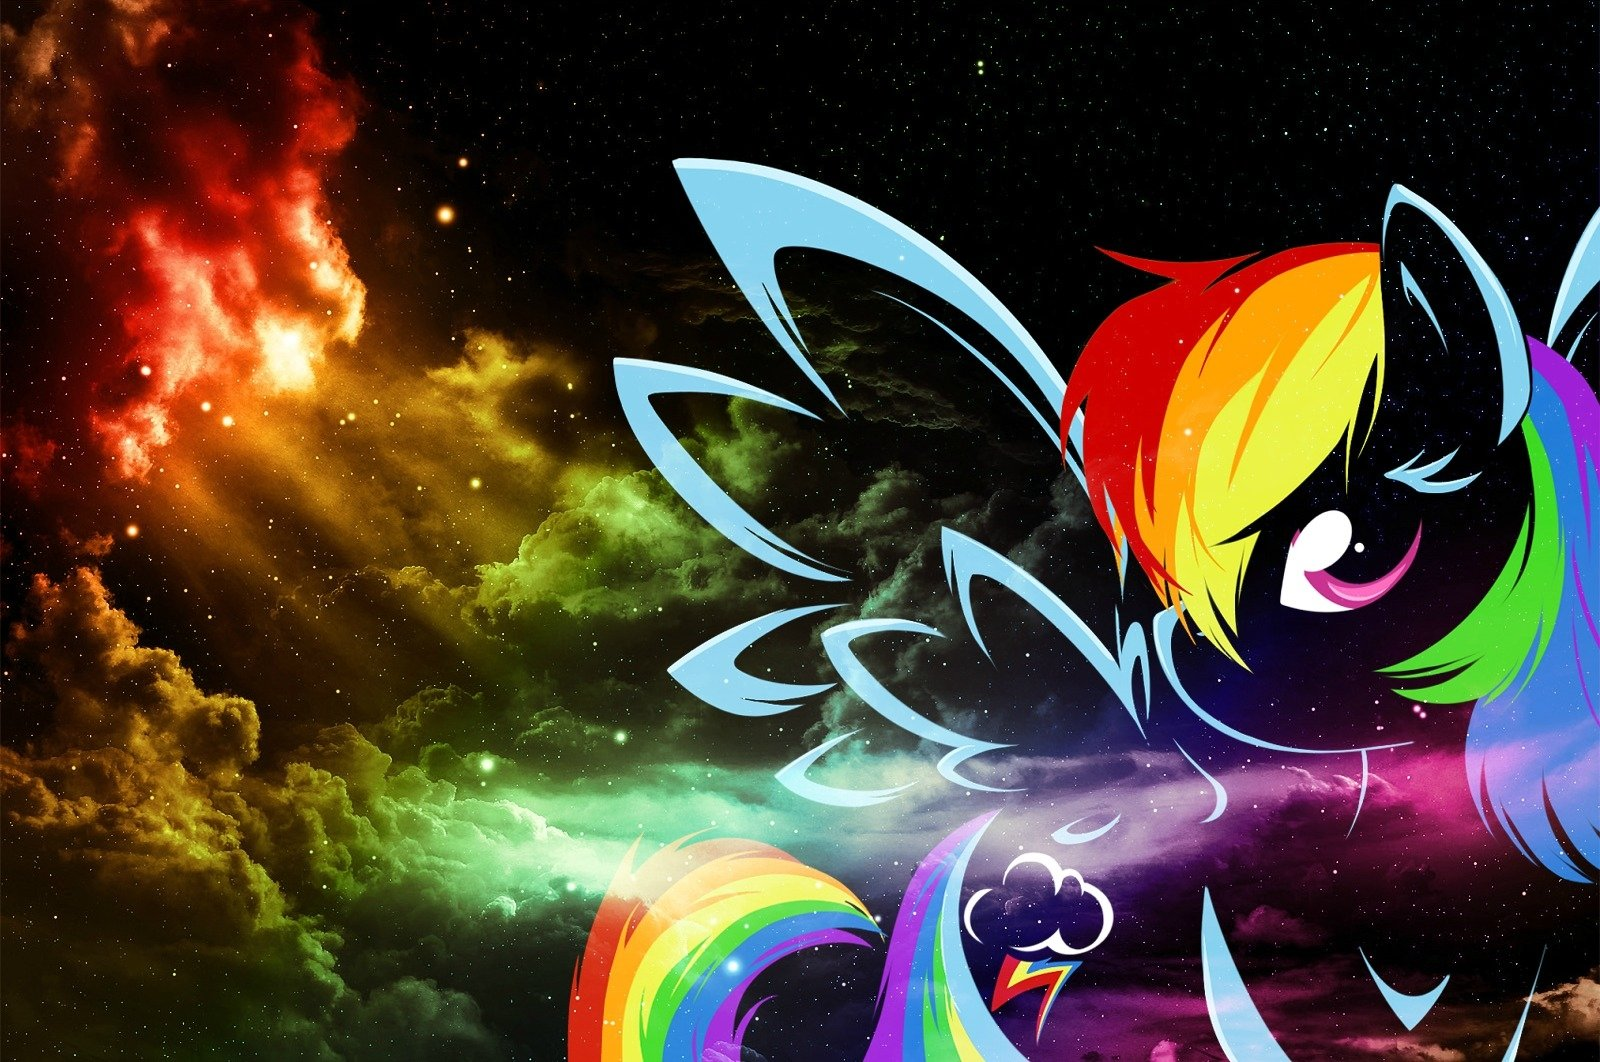 793 My Little Pony Friendship Is Magic Hd Wallpapers Background